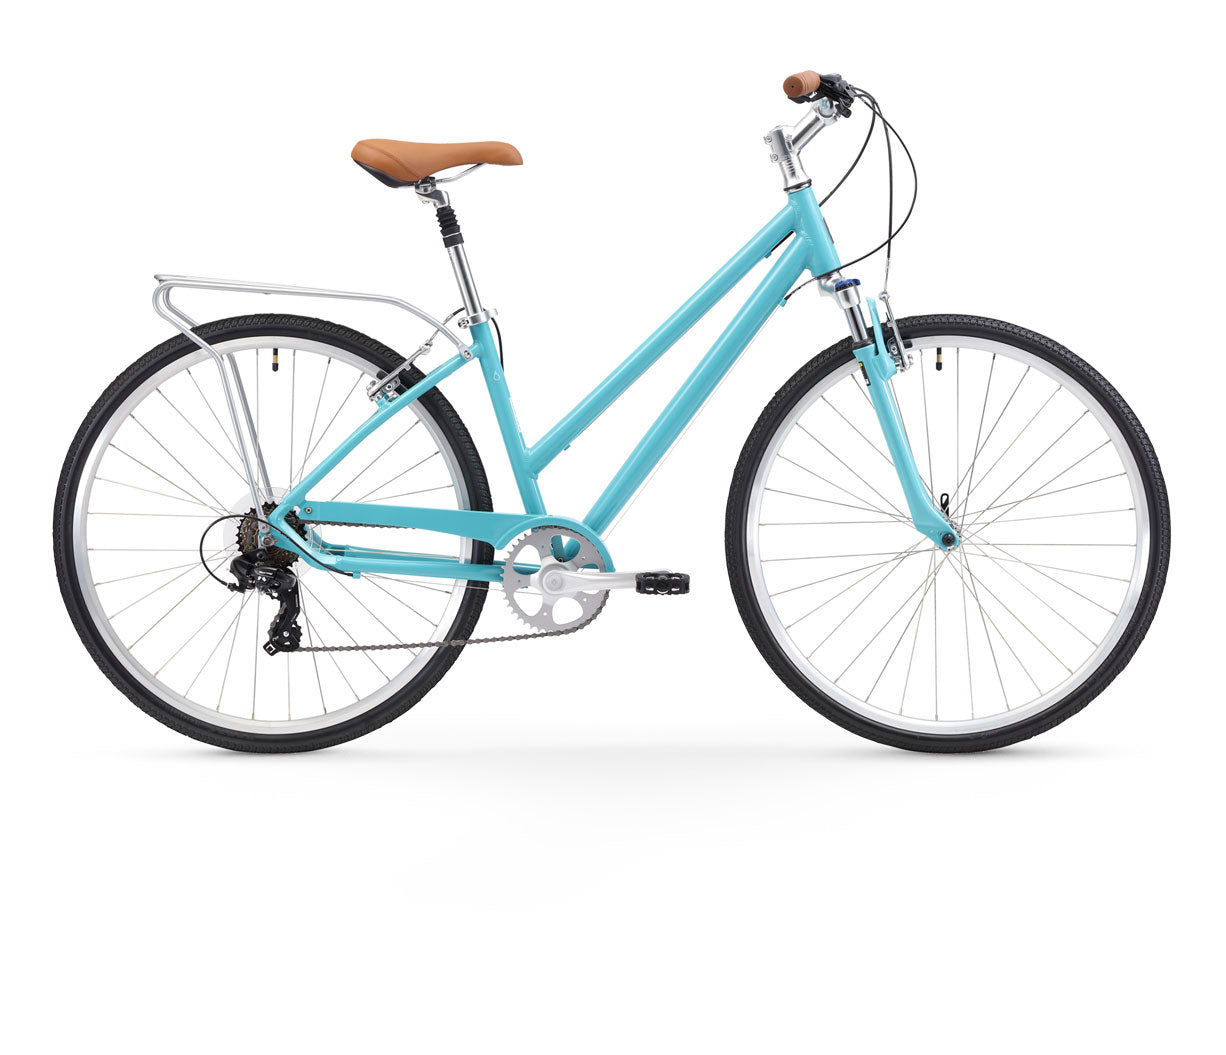 sixthreezero Pave n' Trail Women's 7 Speed Hybrid Bike